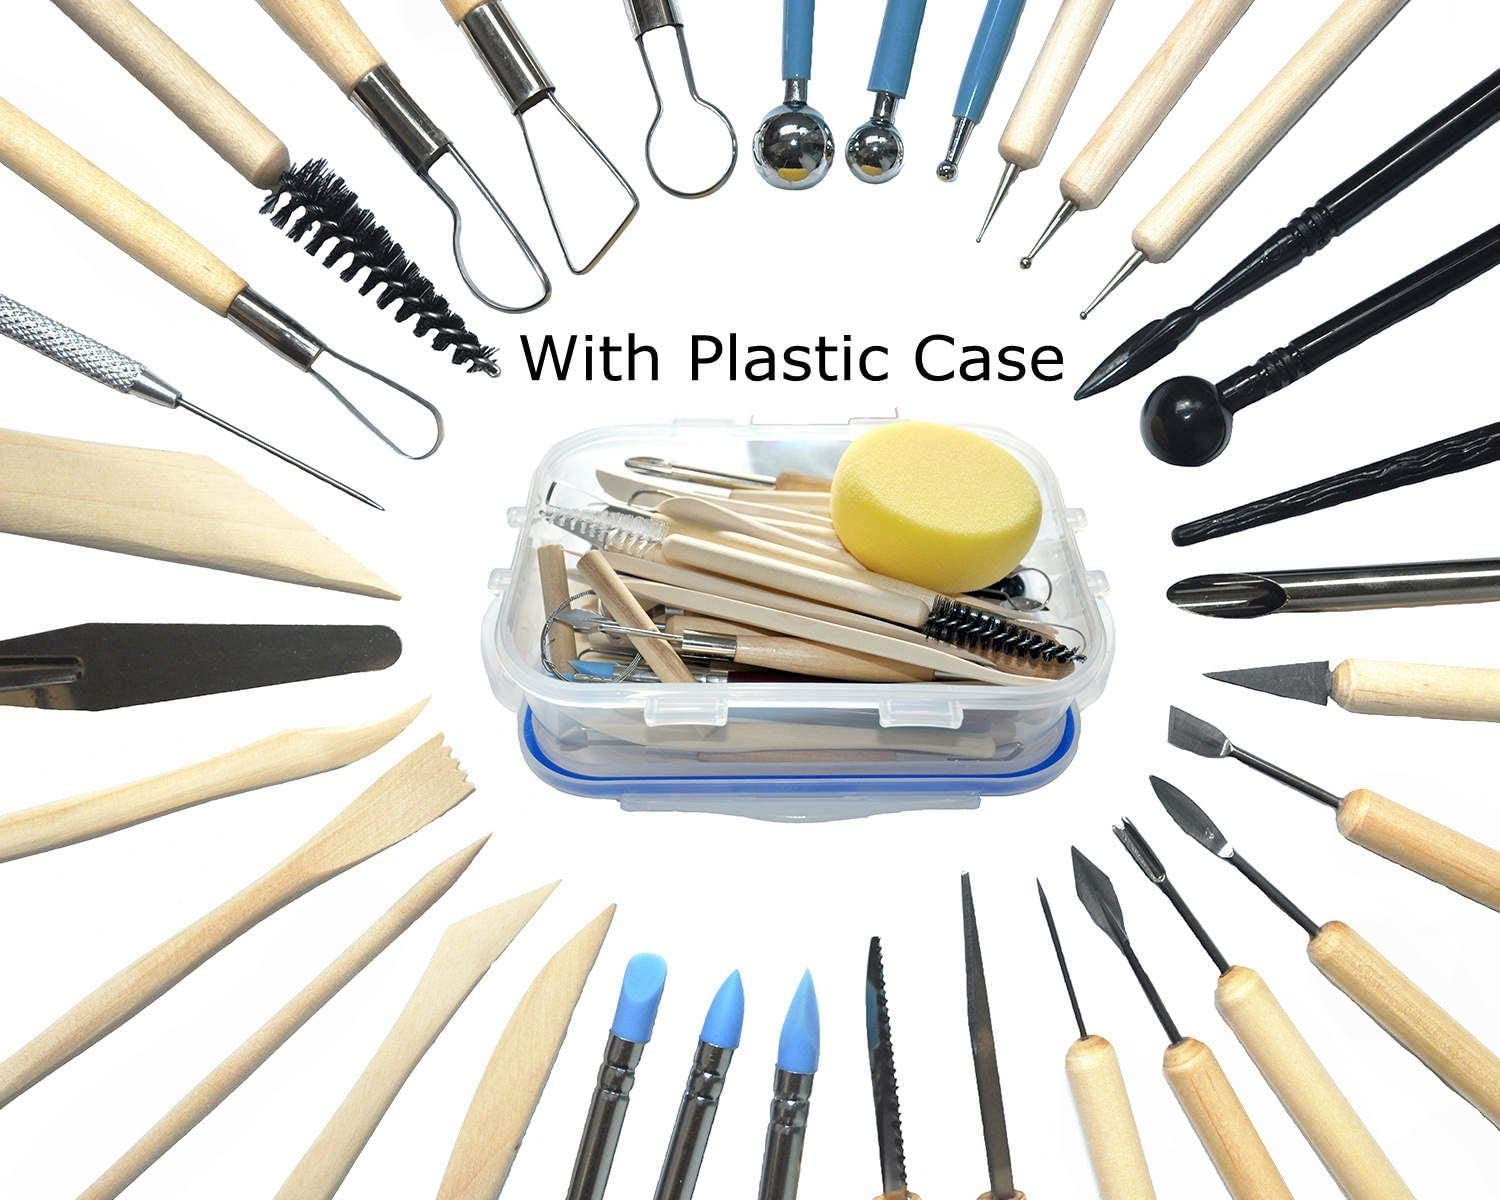 Polymer Clay Tools,Augernis 19PCS Modeling Clay Sculpting Tools with Plastic Case for Kids After School Pottery Sculpture/Classes,Cake Fondant Decoration,Clay,Ceramics Artwork /& Holiday Crafts